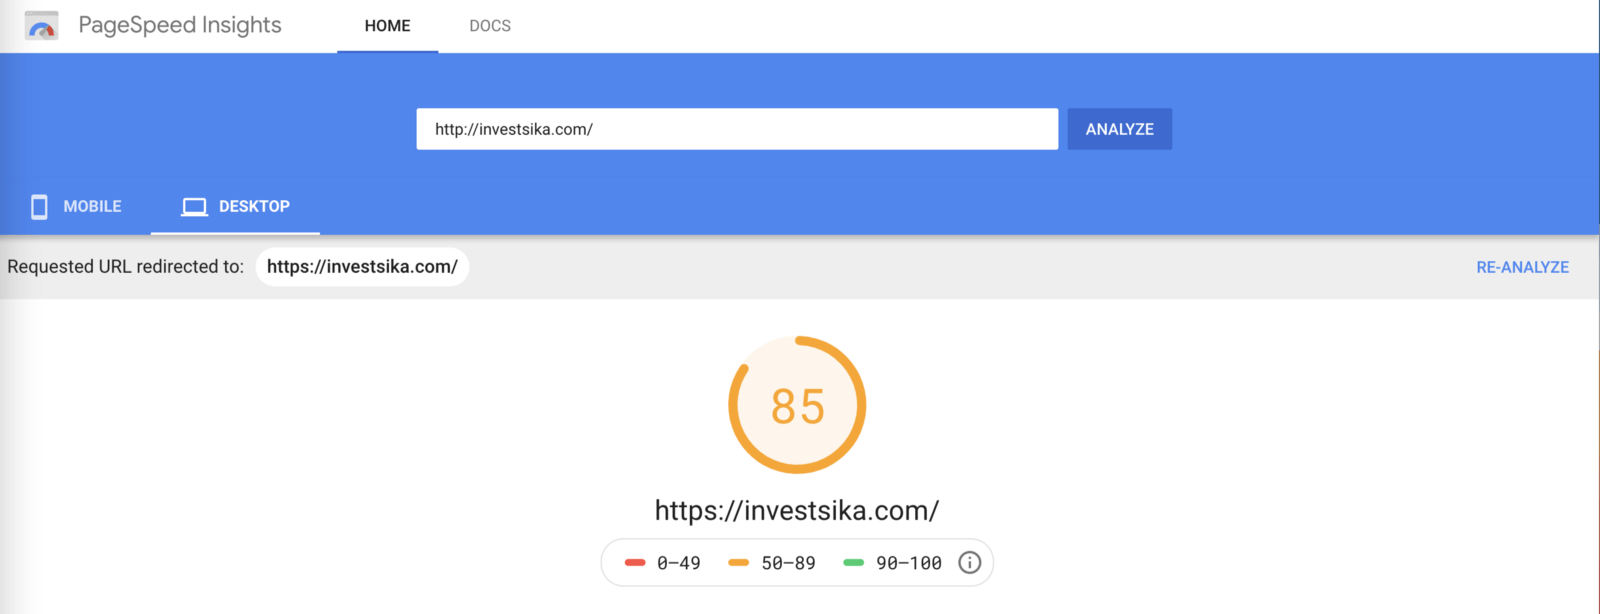 PageSpeed of investsika.com shows 85 in yellow.